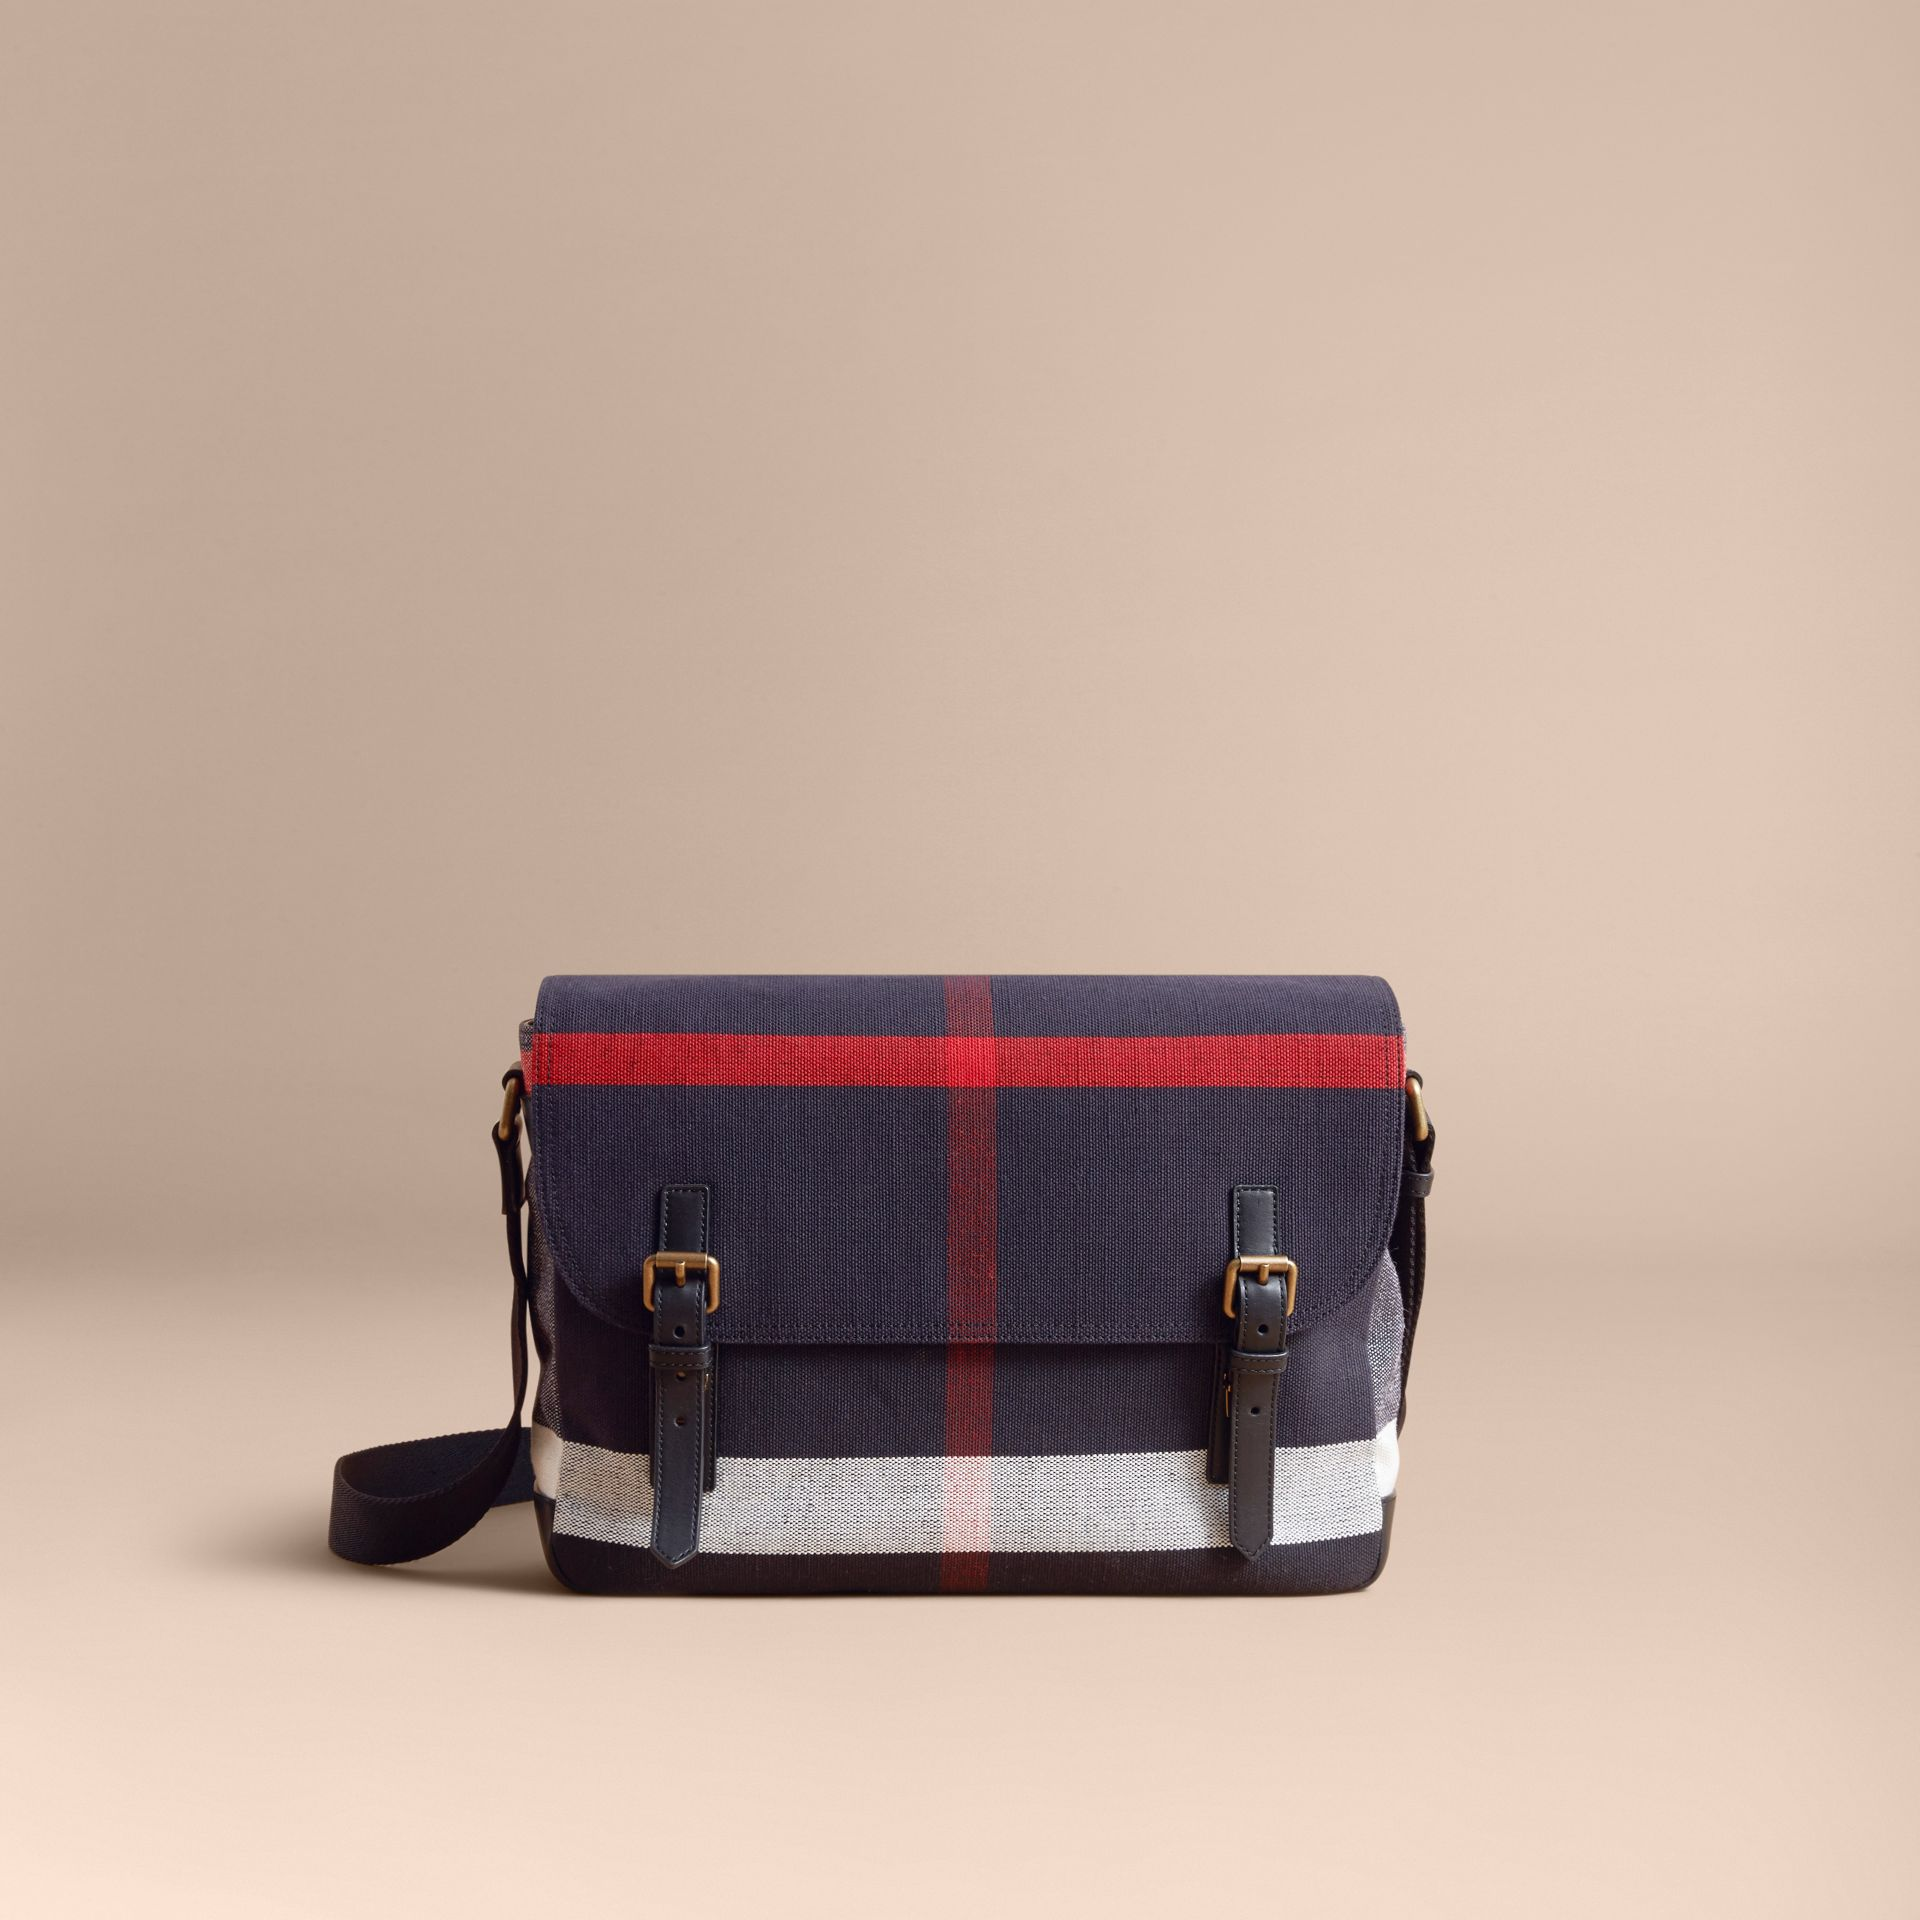 Medium Canvas Check Messenger Bag in Black - Men | Burberry - gallery image 7